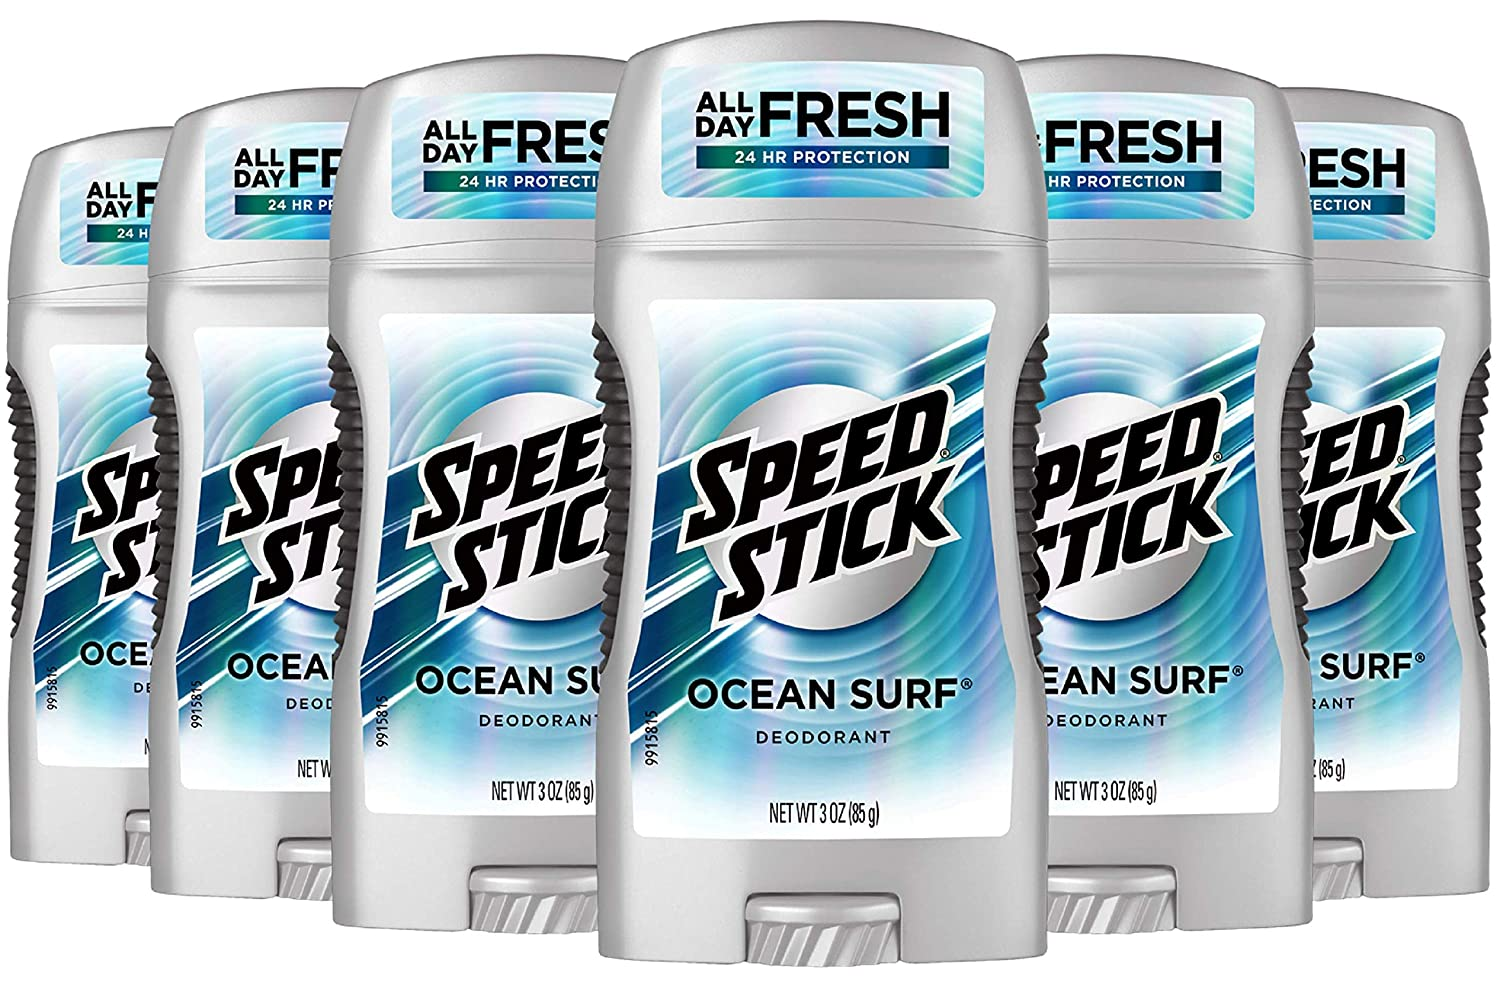 Speed Stick Underarm Deodorant for Men, Aluminum Free, Ocean Surf - 3 Ounce (6 Pack) : Beauty